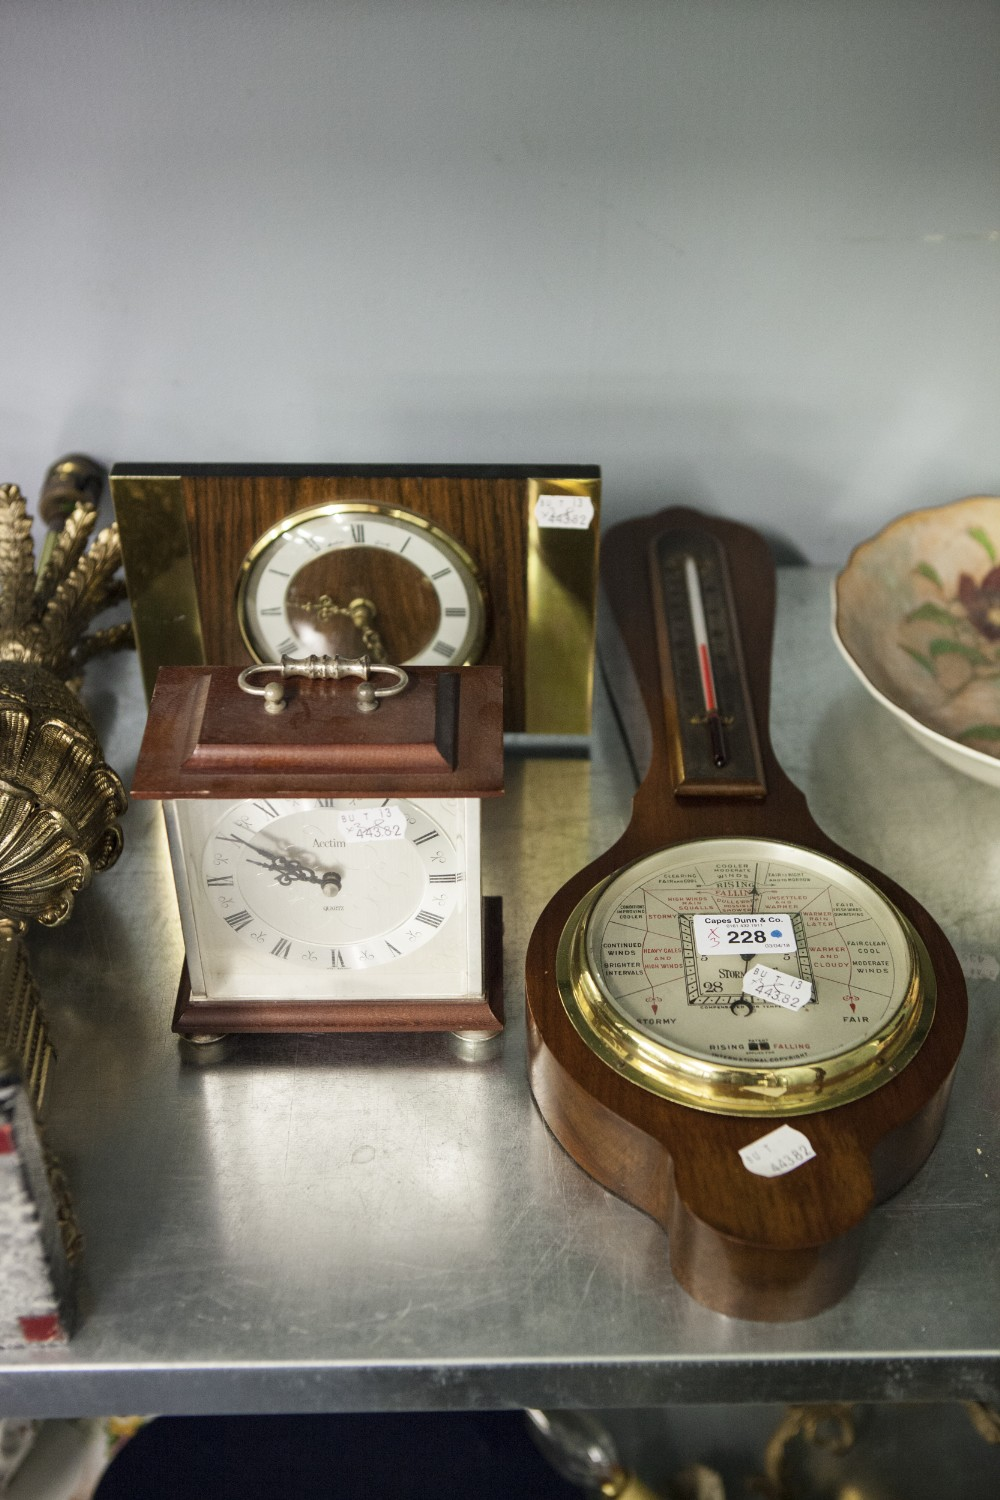 Lot 228 - S&M ANEROID BAROMETER AND ALCOHOL THERMOMETER IN WALNUT CASE, stamped 2437, BENTIMA QUARTZ WALNUT